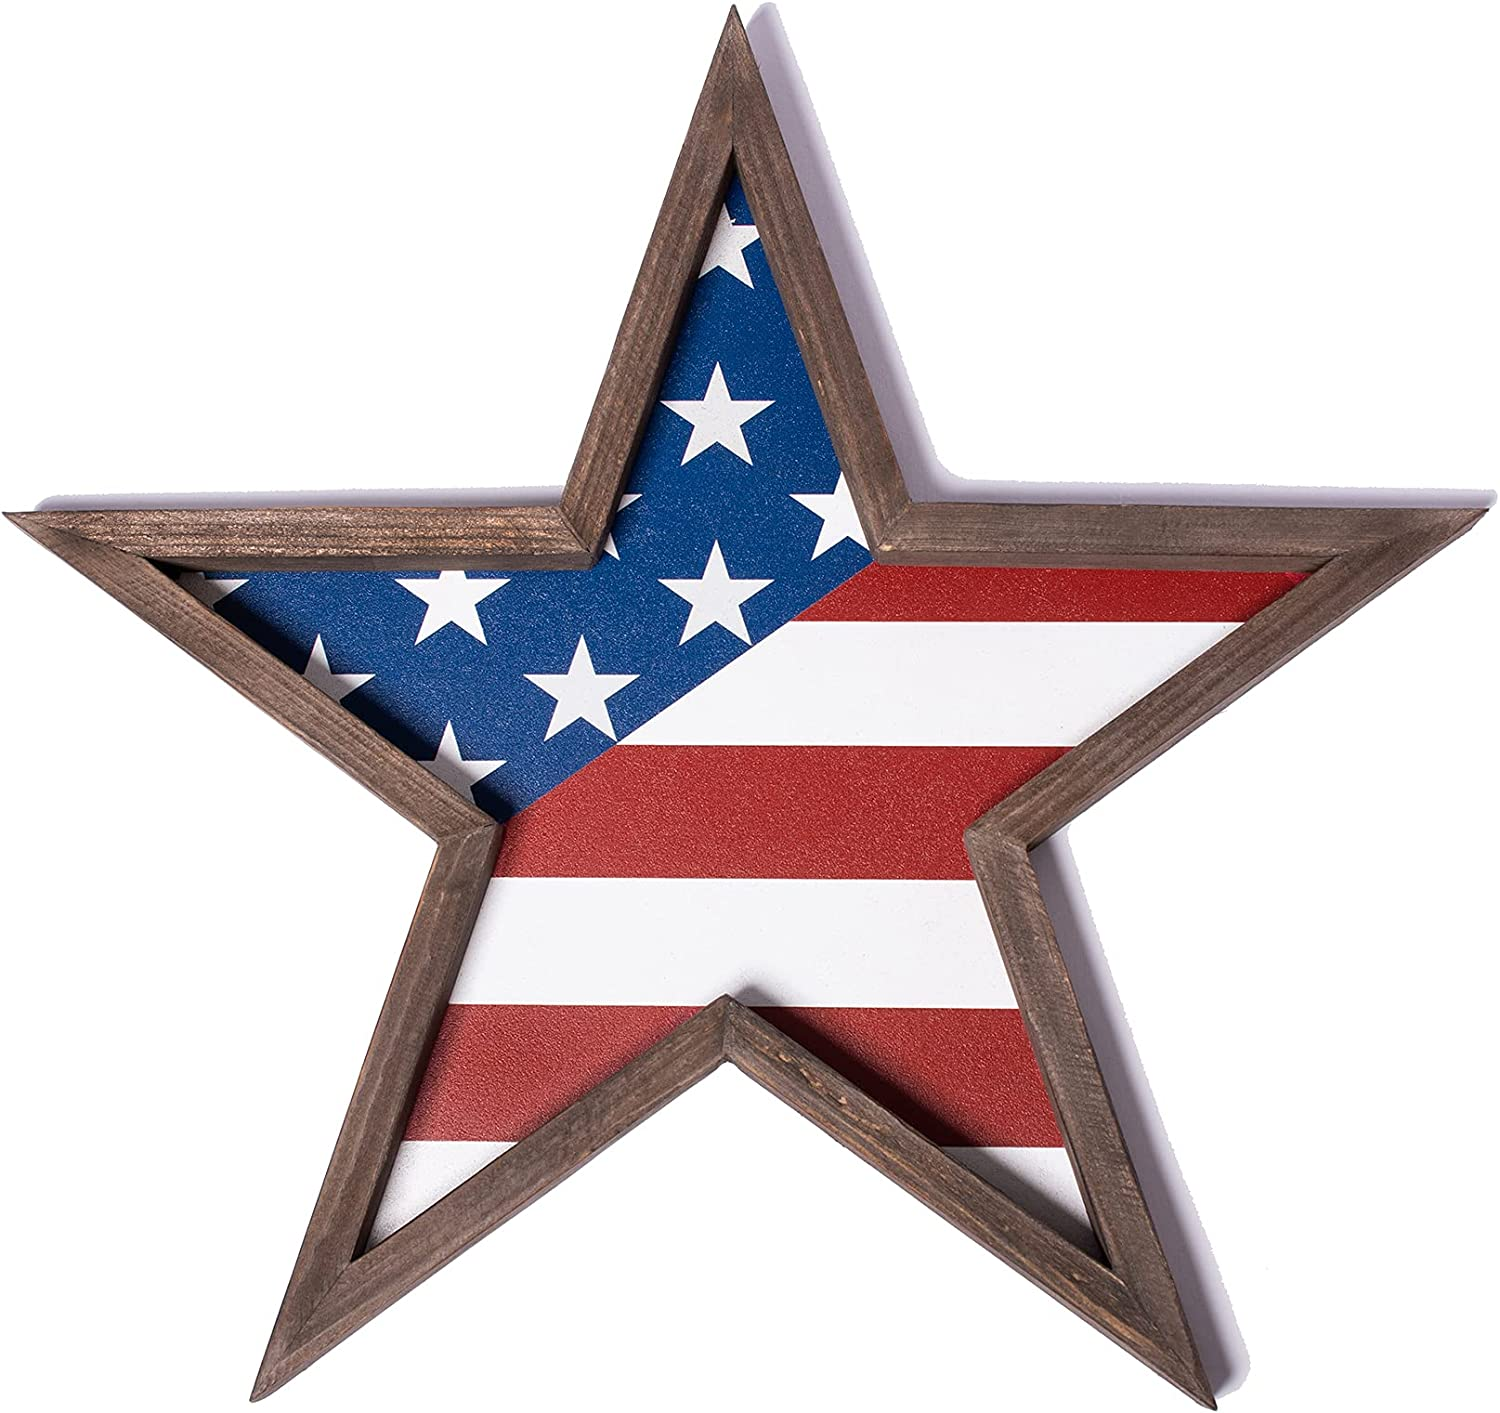 Wooden Star - American Flag for Room Decor, USA Wall Decor or Shelf Decor with US Flag, Patriotic, Rustic Wall Art with Stars, Great Gift for Home Decor, American Wooden Star Americana, Wall Hanging